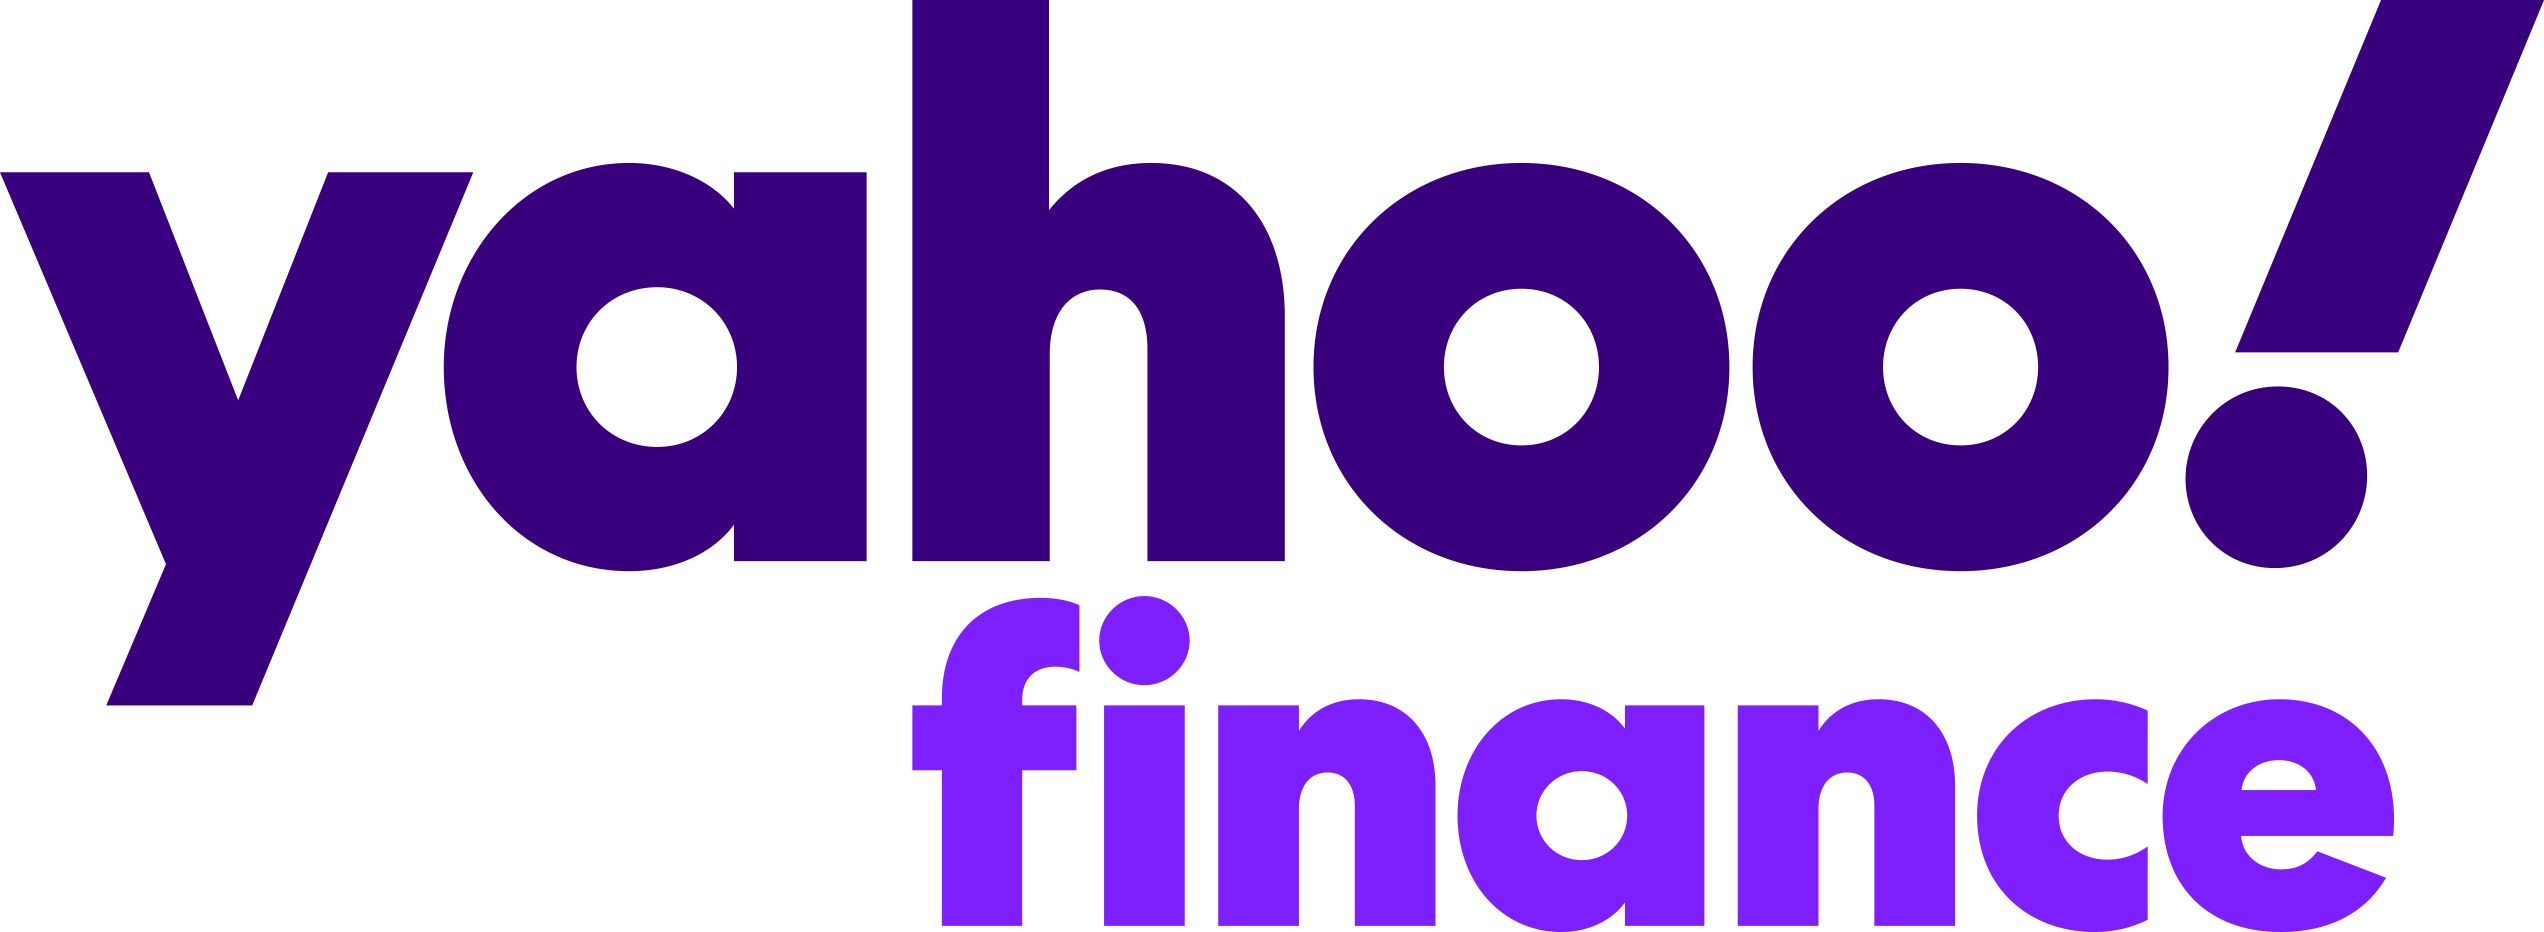 Yahoo Finance-1